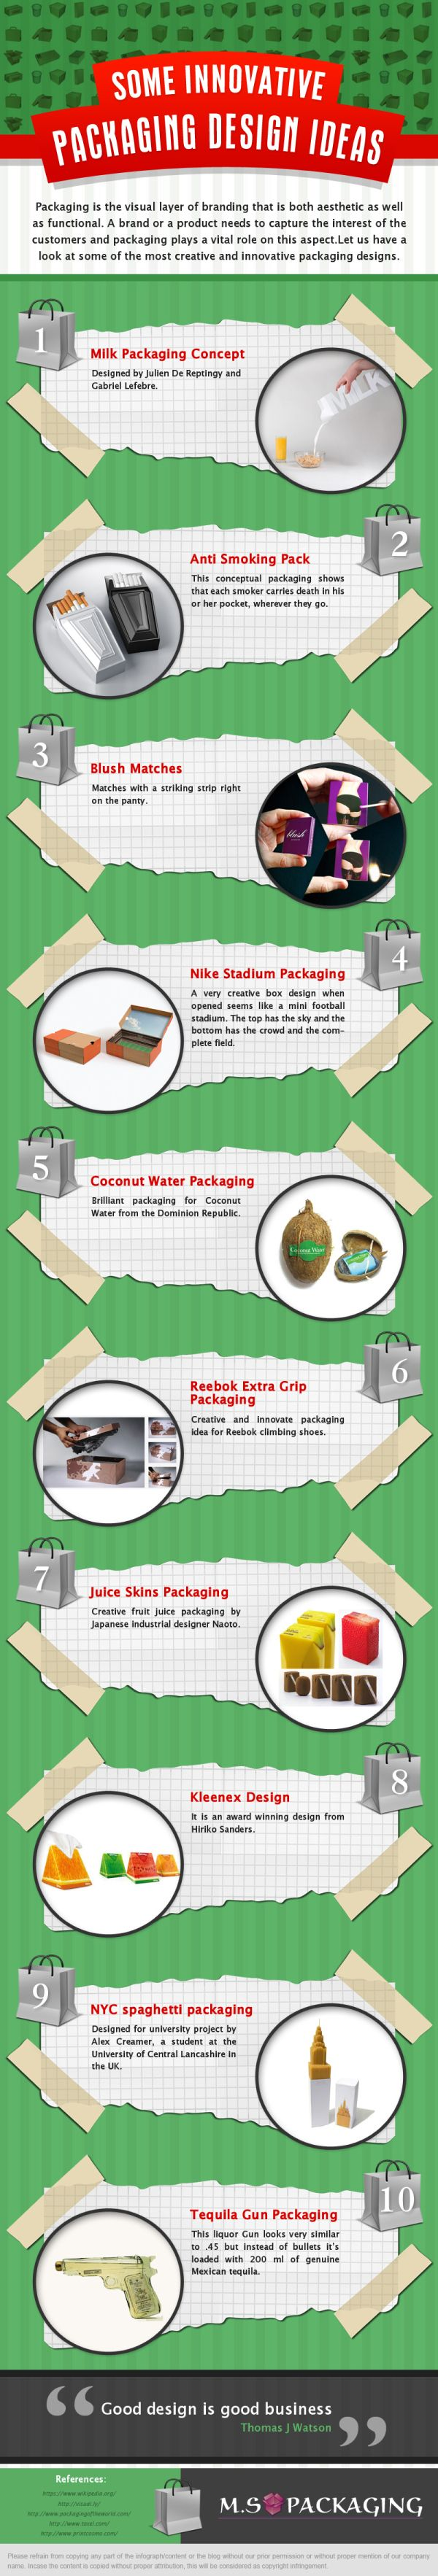 Some Innovative Packaging Design Ideas